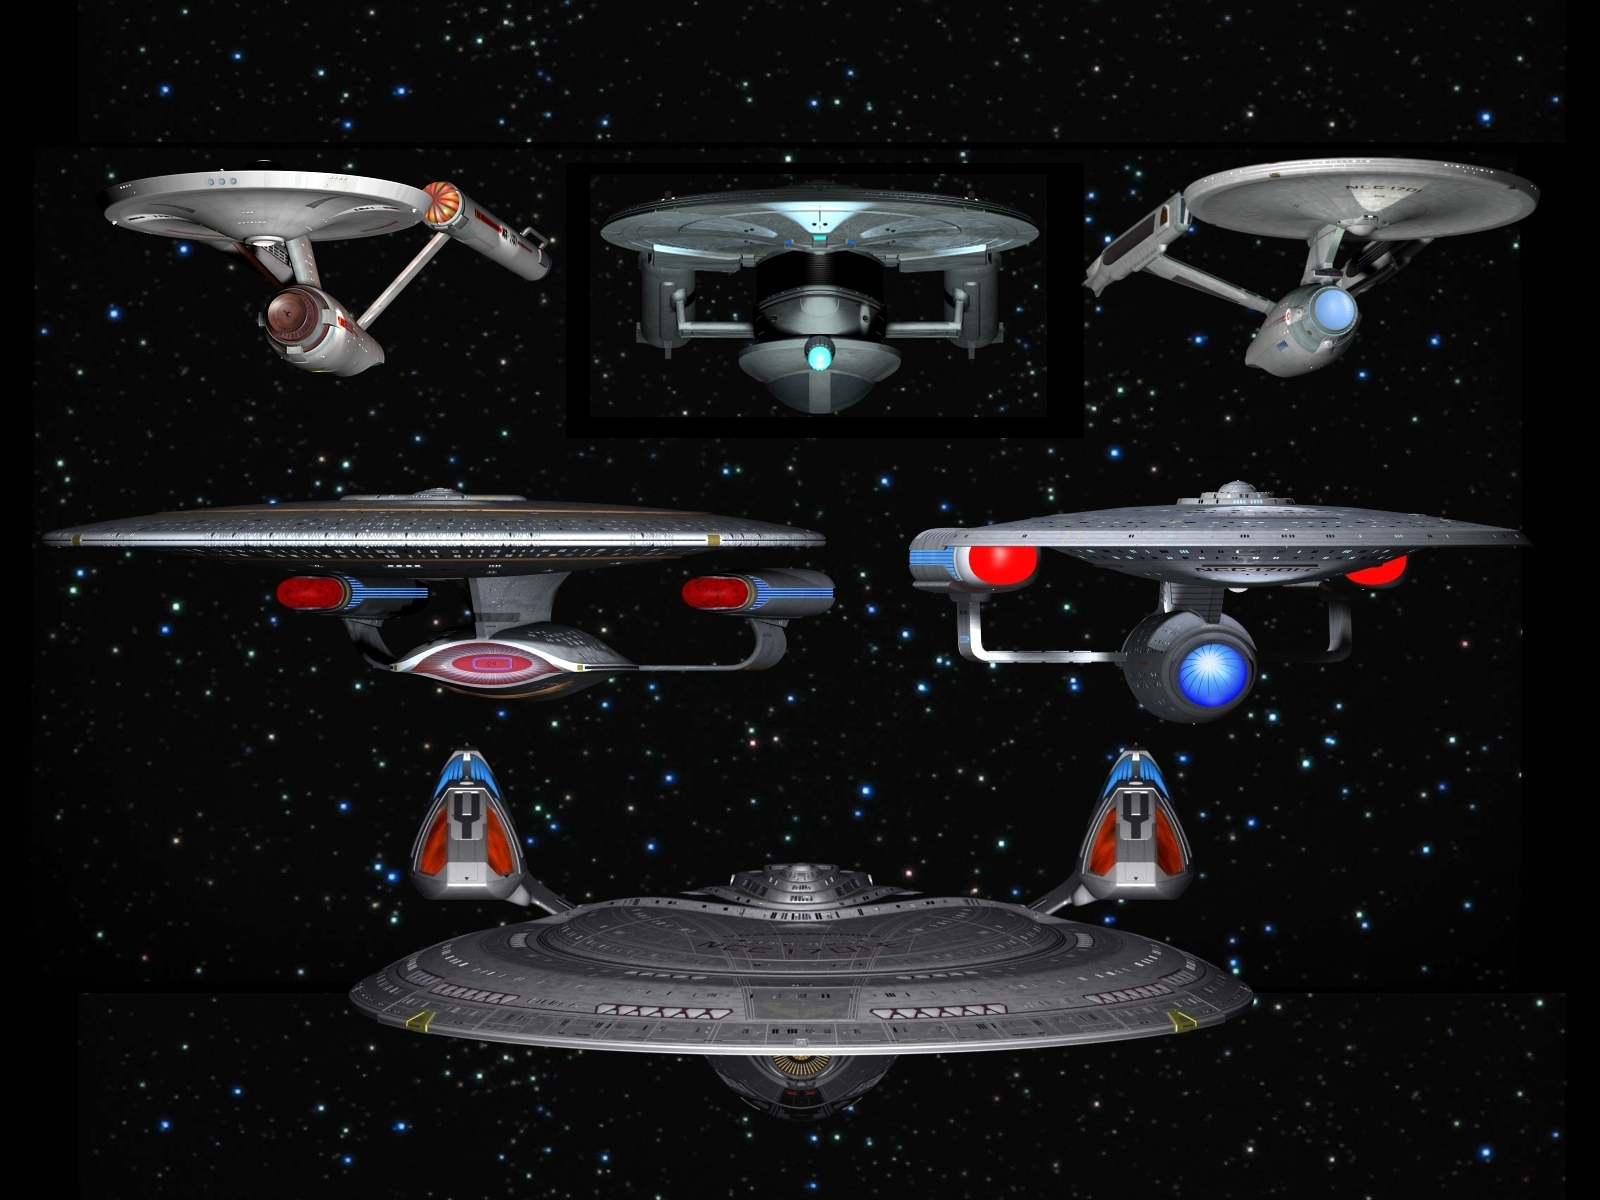 The Starships Enterprise by davemetlesits